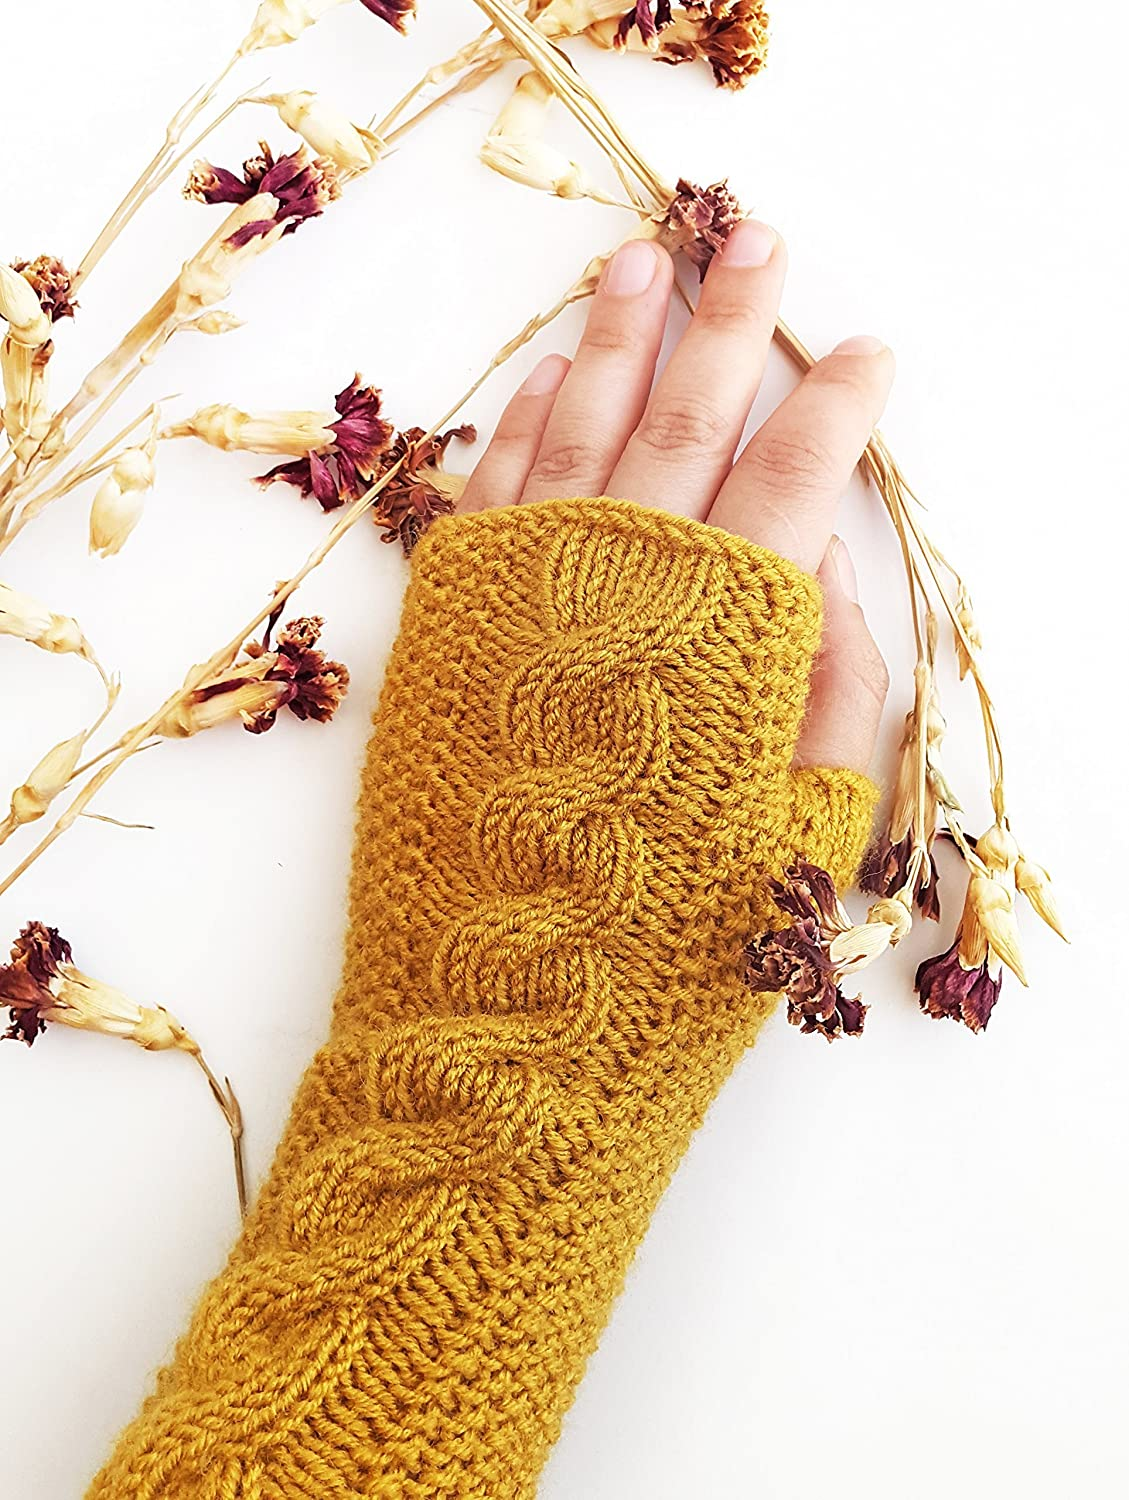 Mustard cable knit gloves - Knit fingerless gloves Fingerless gloves Mustard yellow gloves Gift for girlfriend